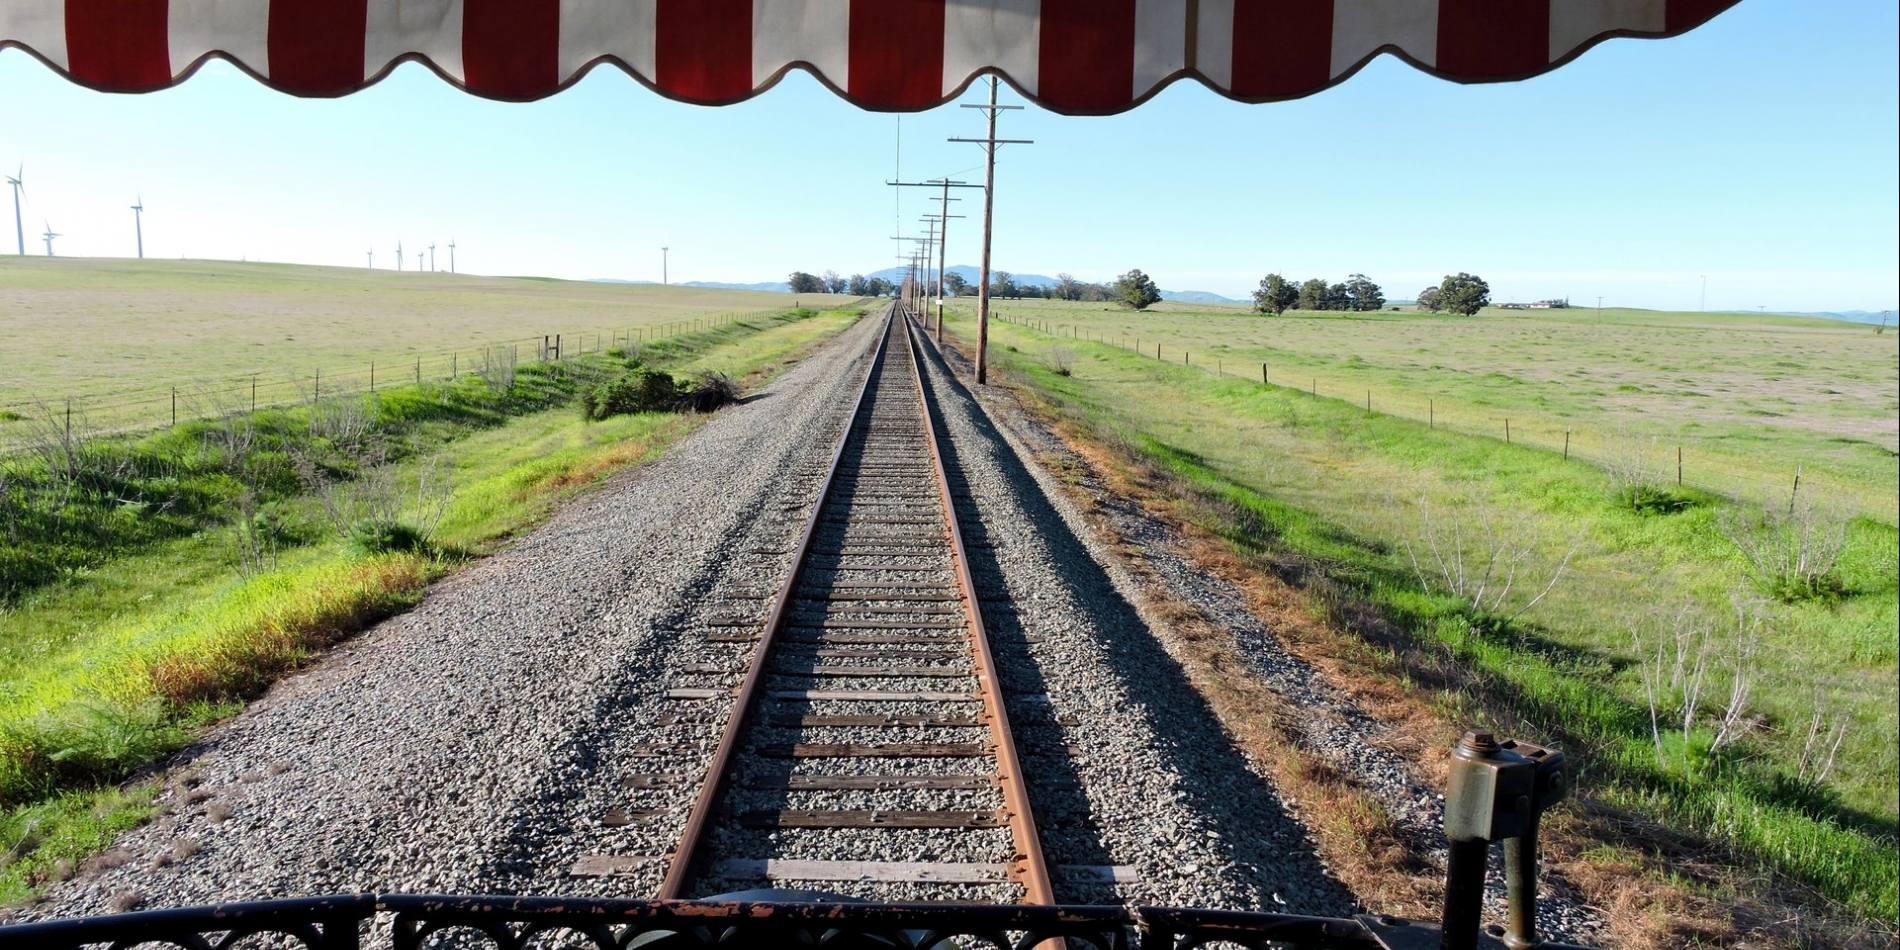 Ride historic train cars through our hills at the Western Railway Museum